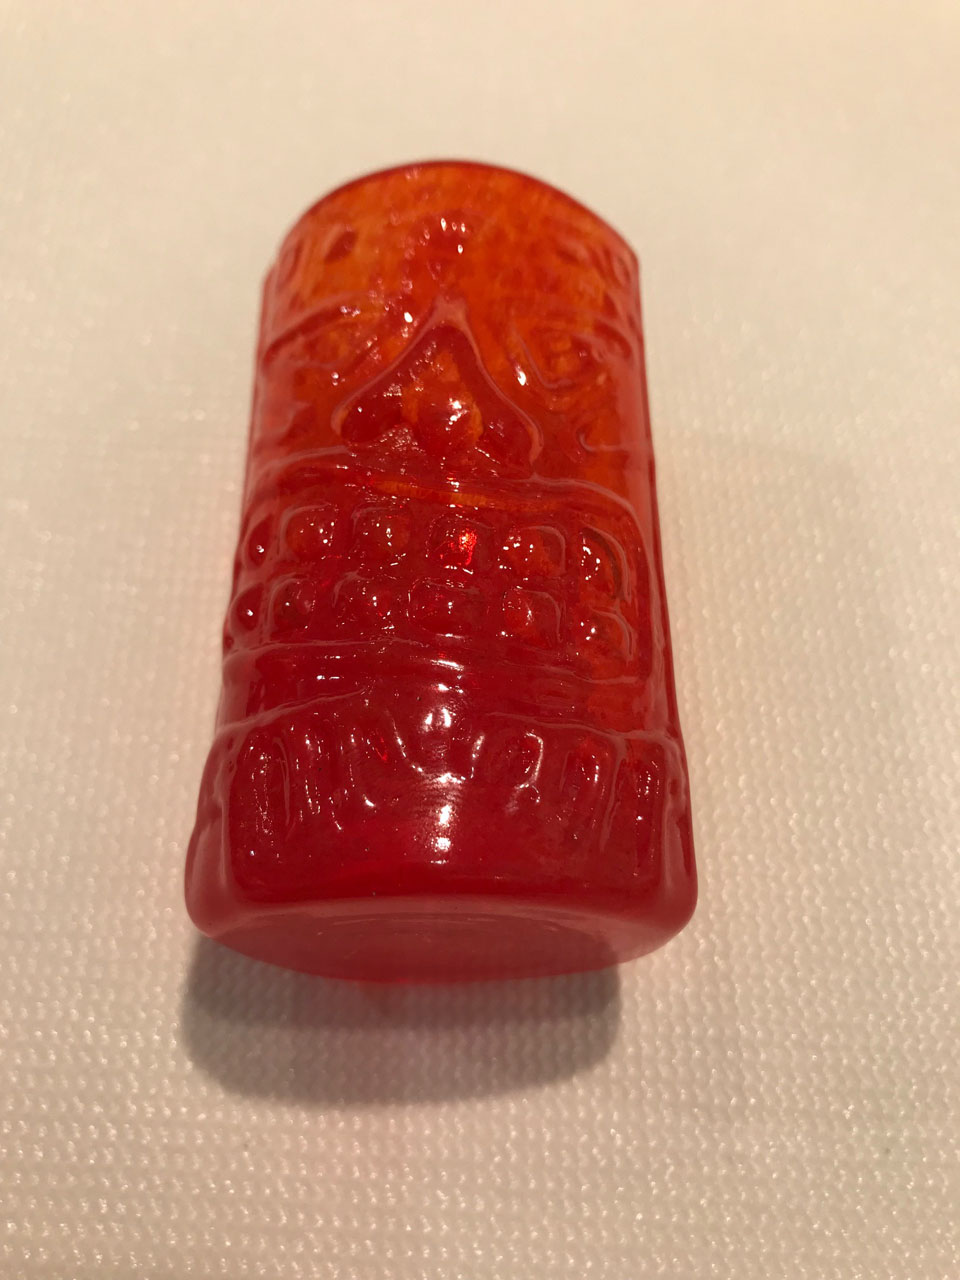 Orange Tiki Shot Glass by Mike McCain